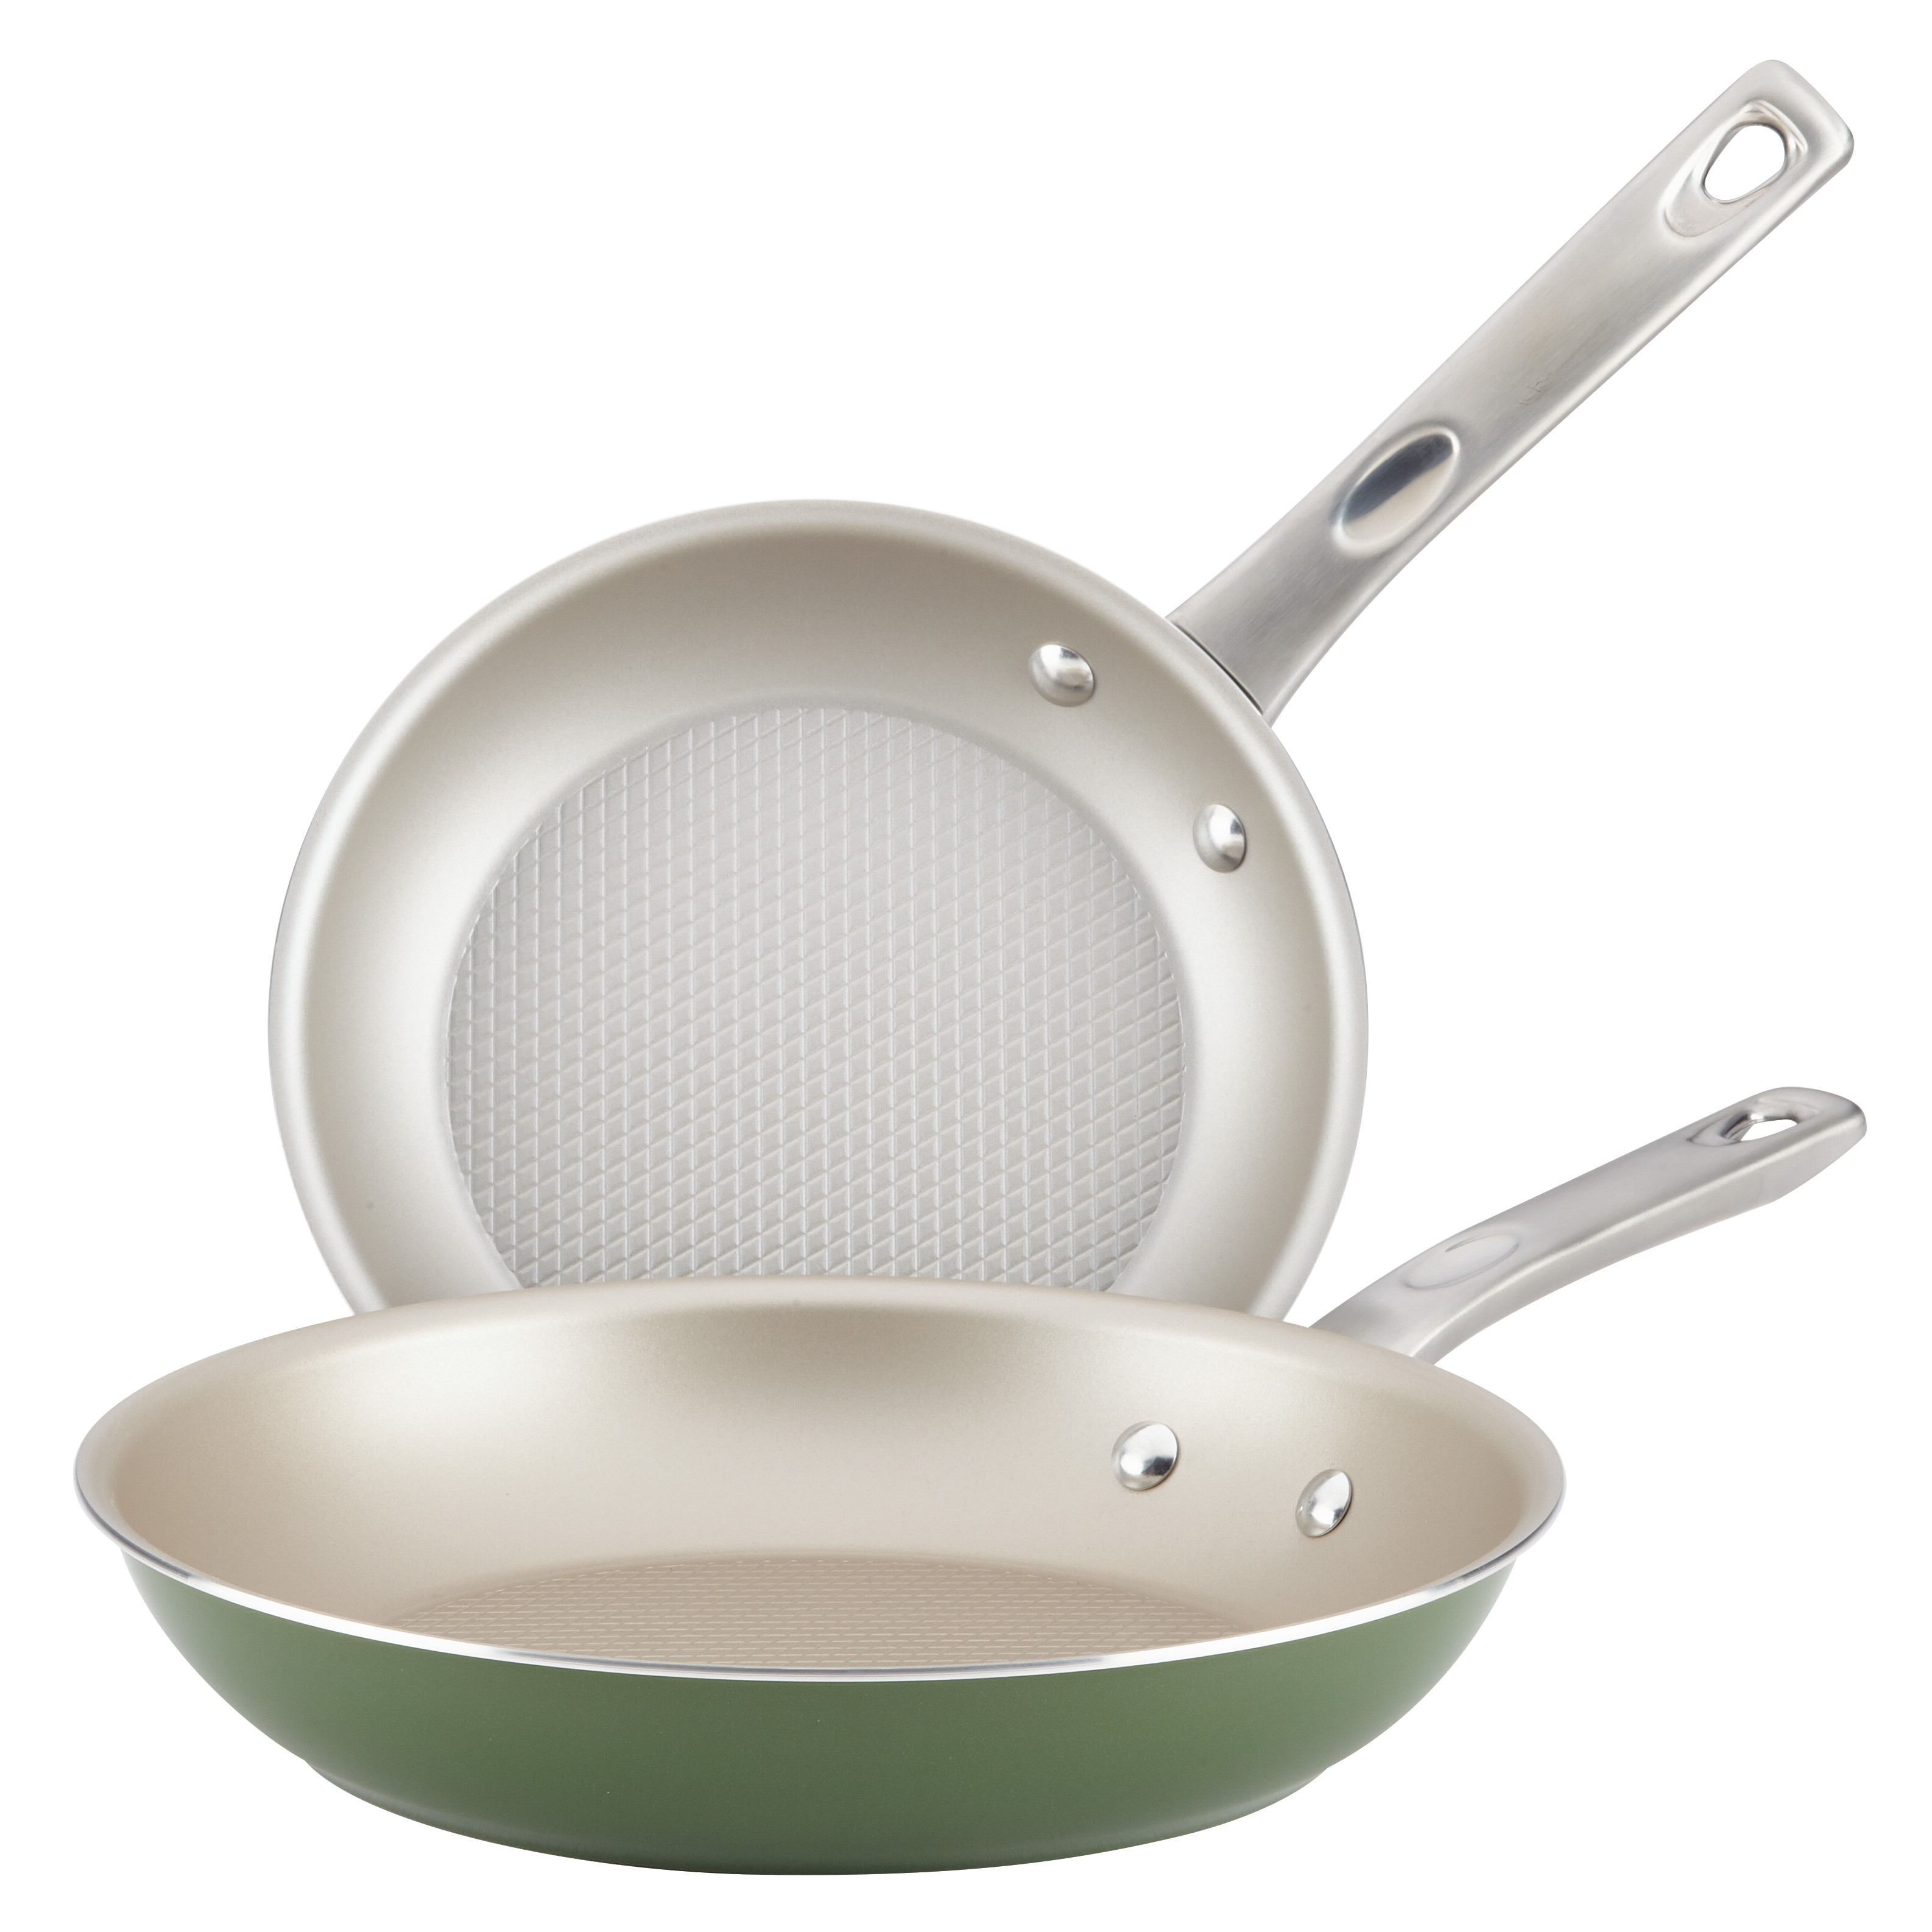 Ayesha Curry Home Collection Nonstick Skillet S/2